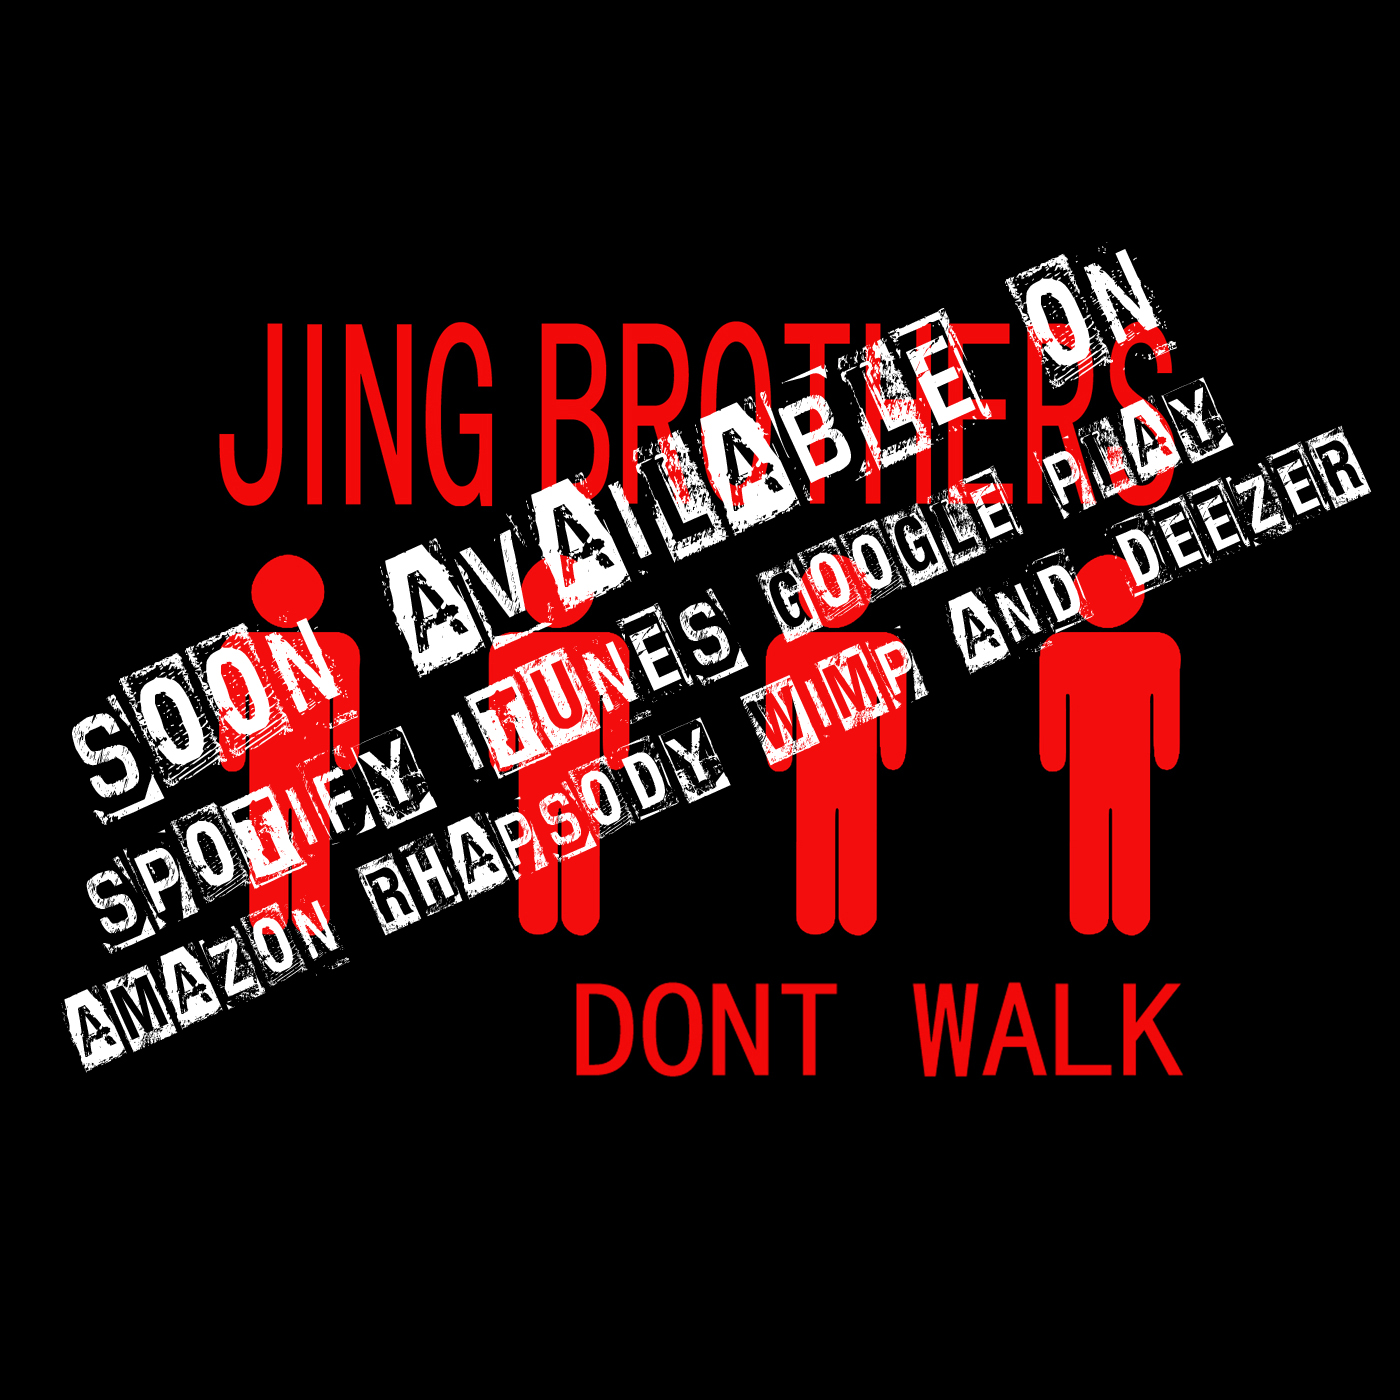 Dont walk release